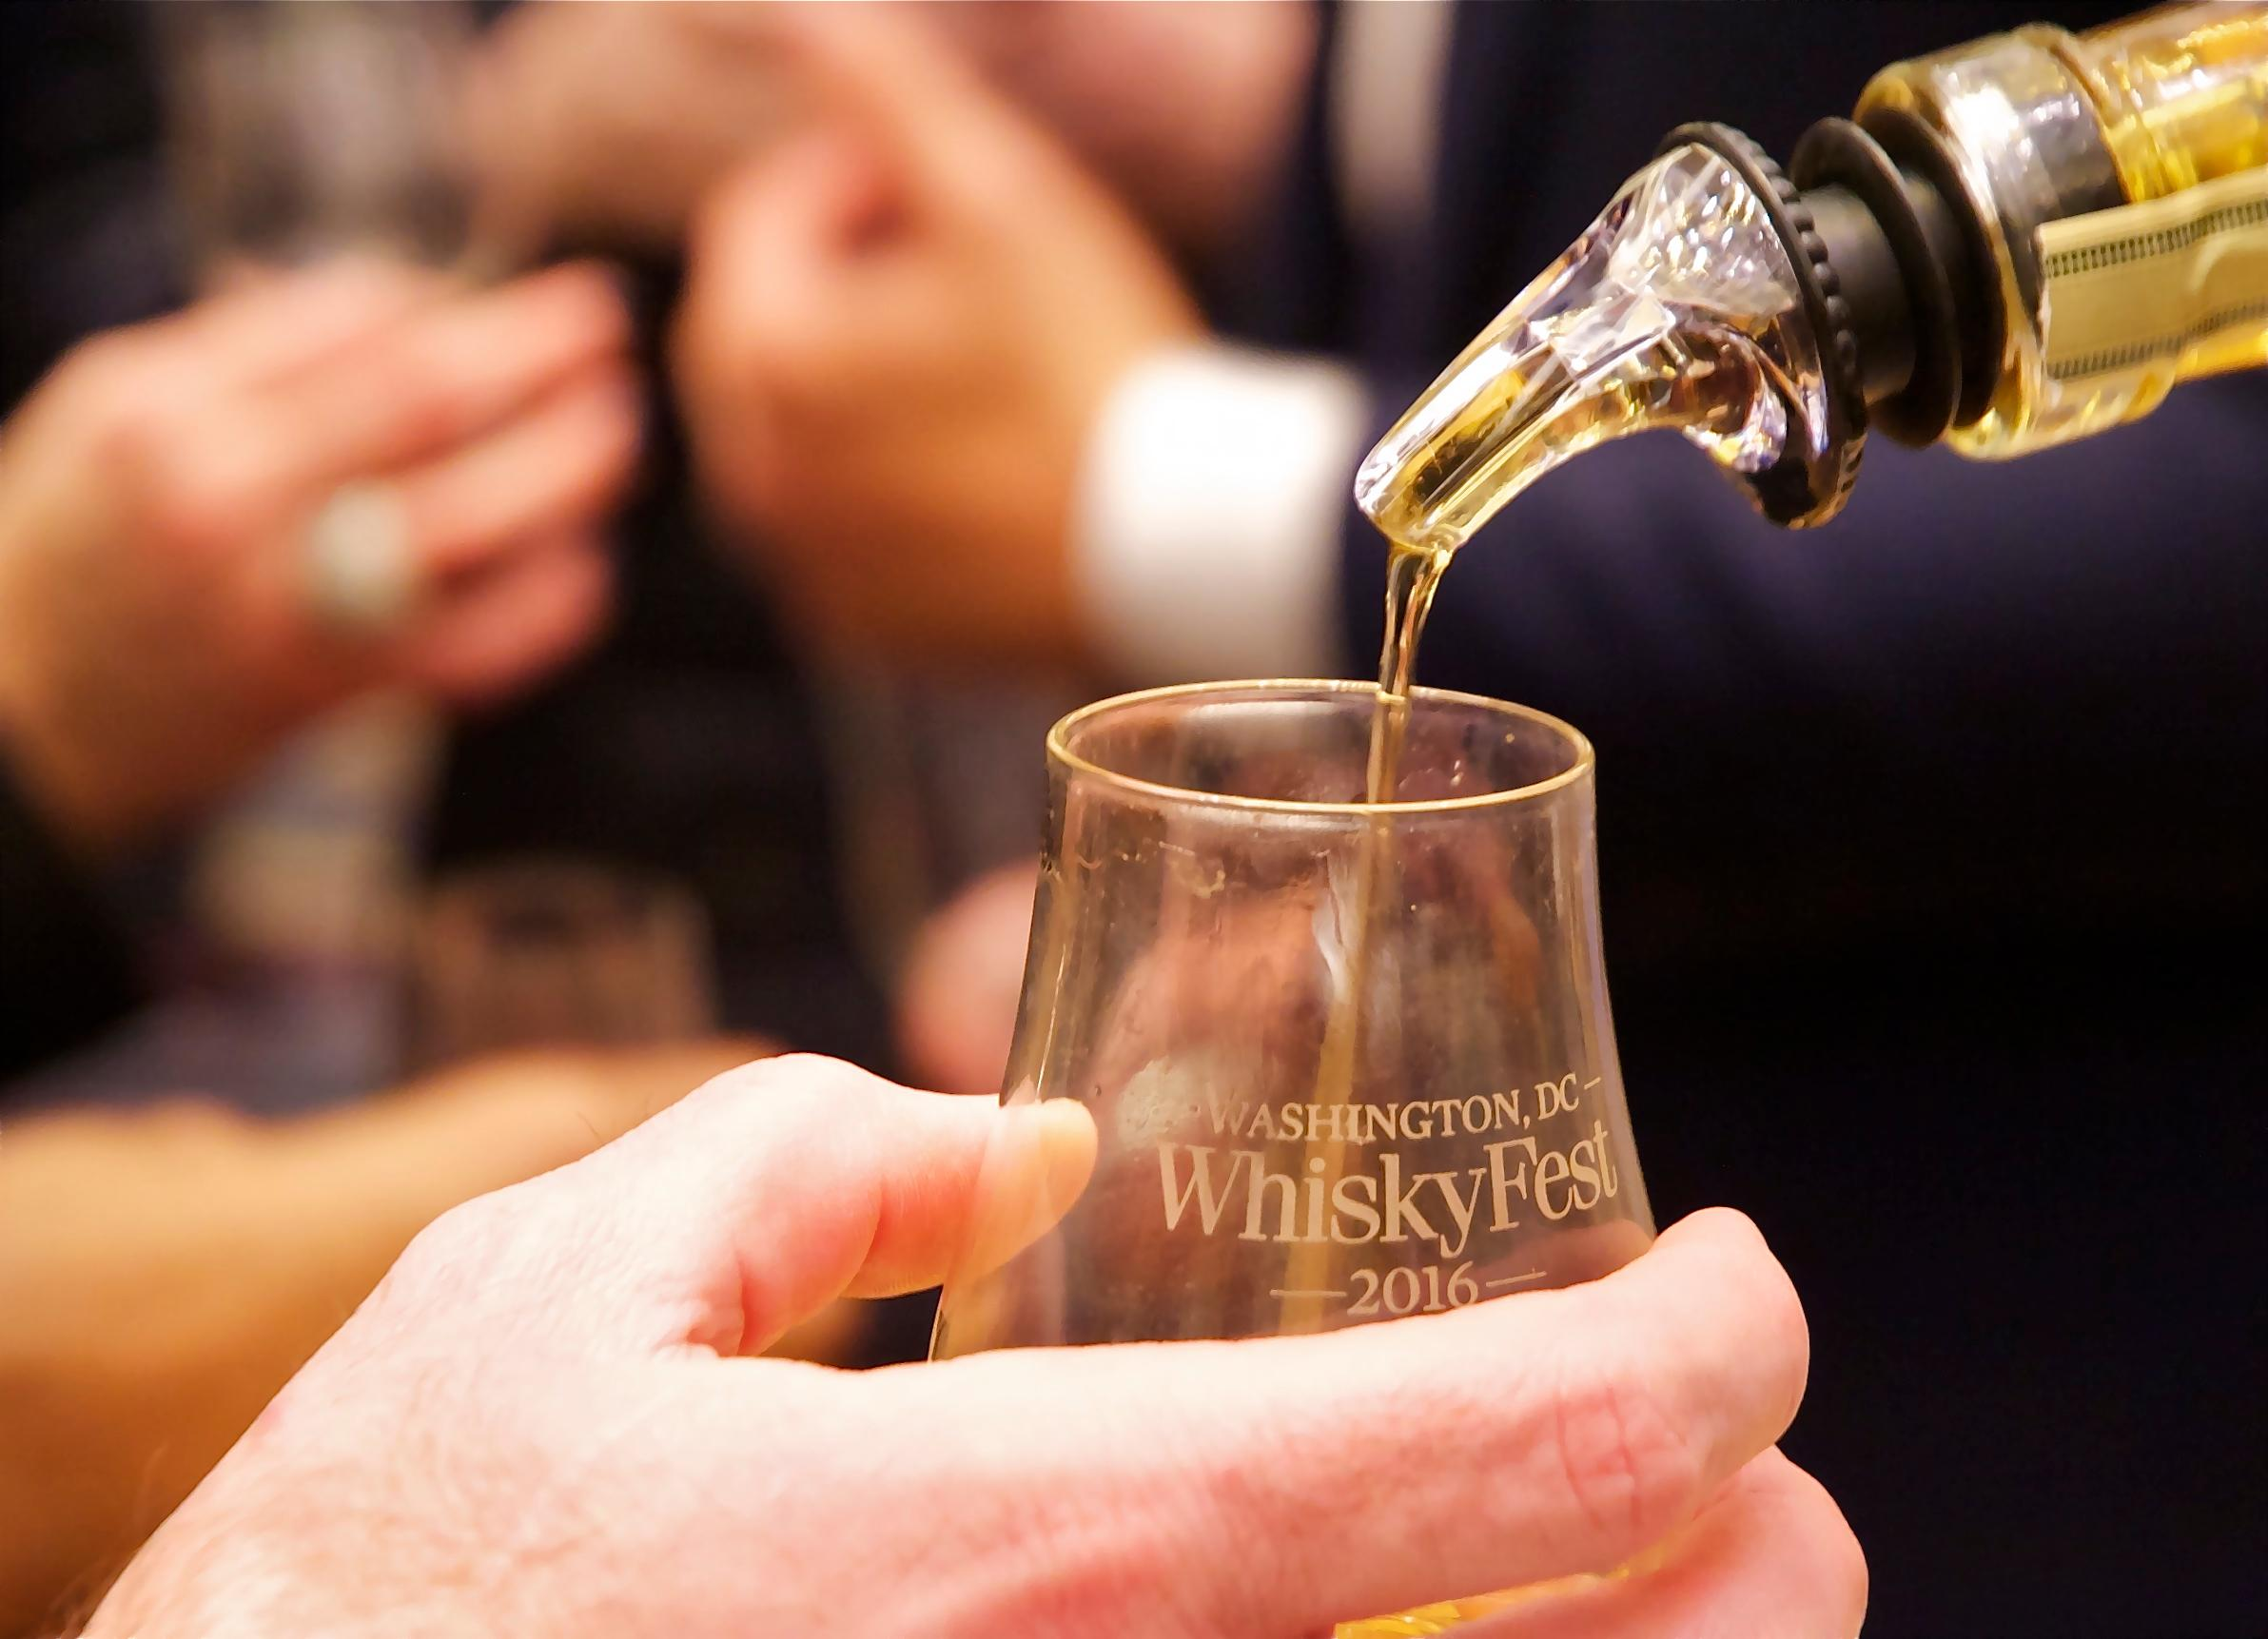 WhiskyFest gives fans the chance to sample whiskies from around the world, including single and blended Scotch, Irish, Bourbon, rye, Tennessee, Japanese and Canadian. (Image: Courtesy WhiskeyFest)